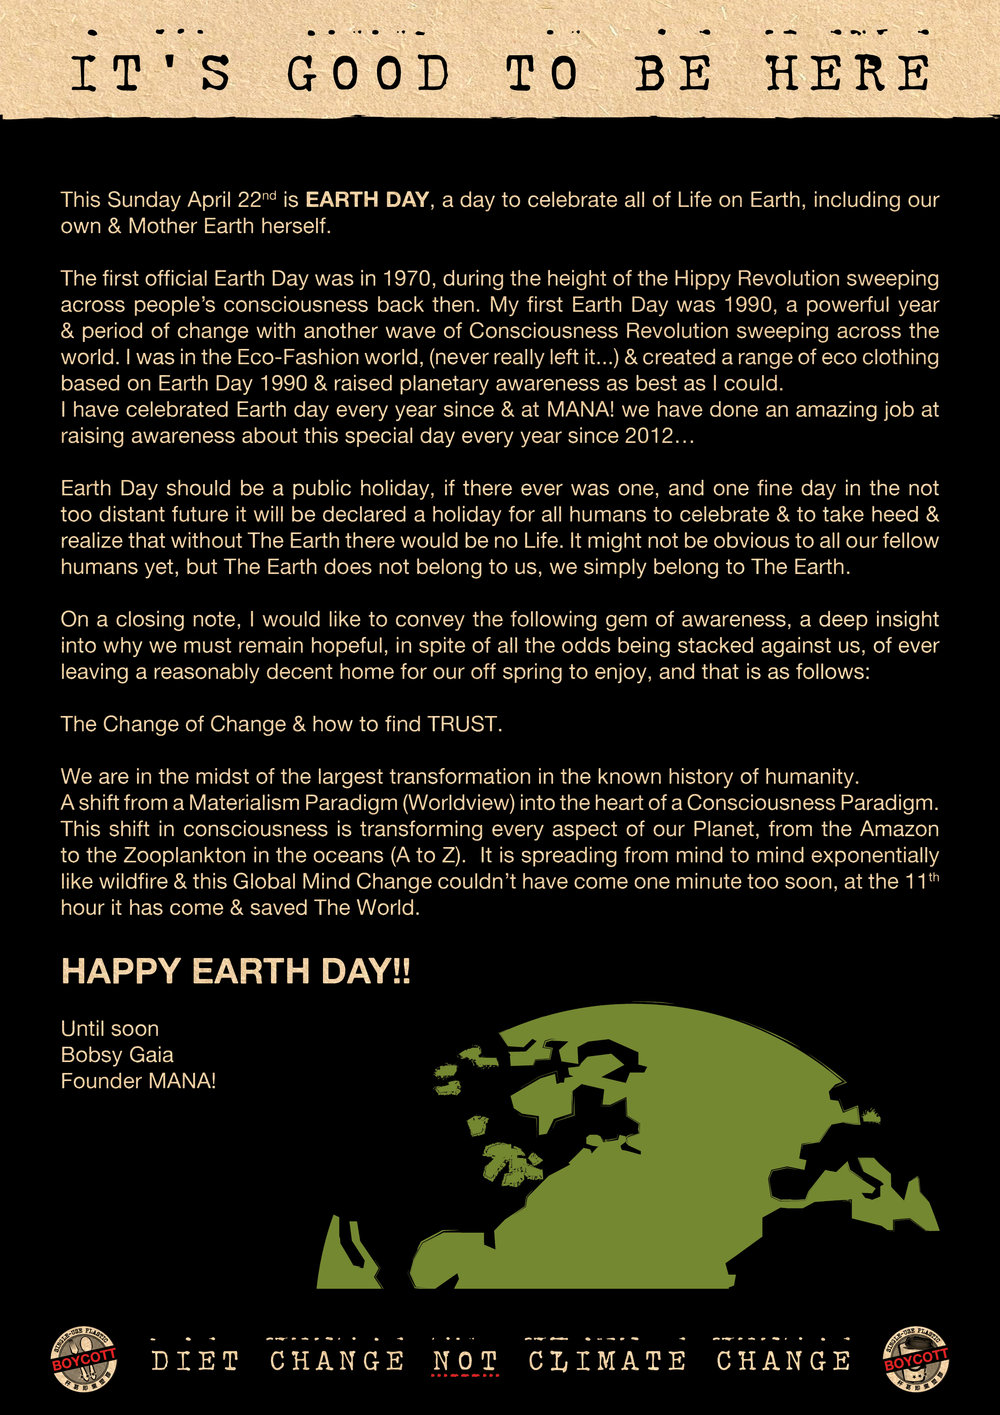 Bobsy's Blog - Earth Day Message.jpg